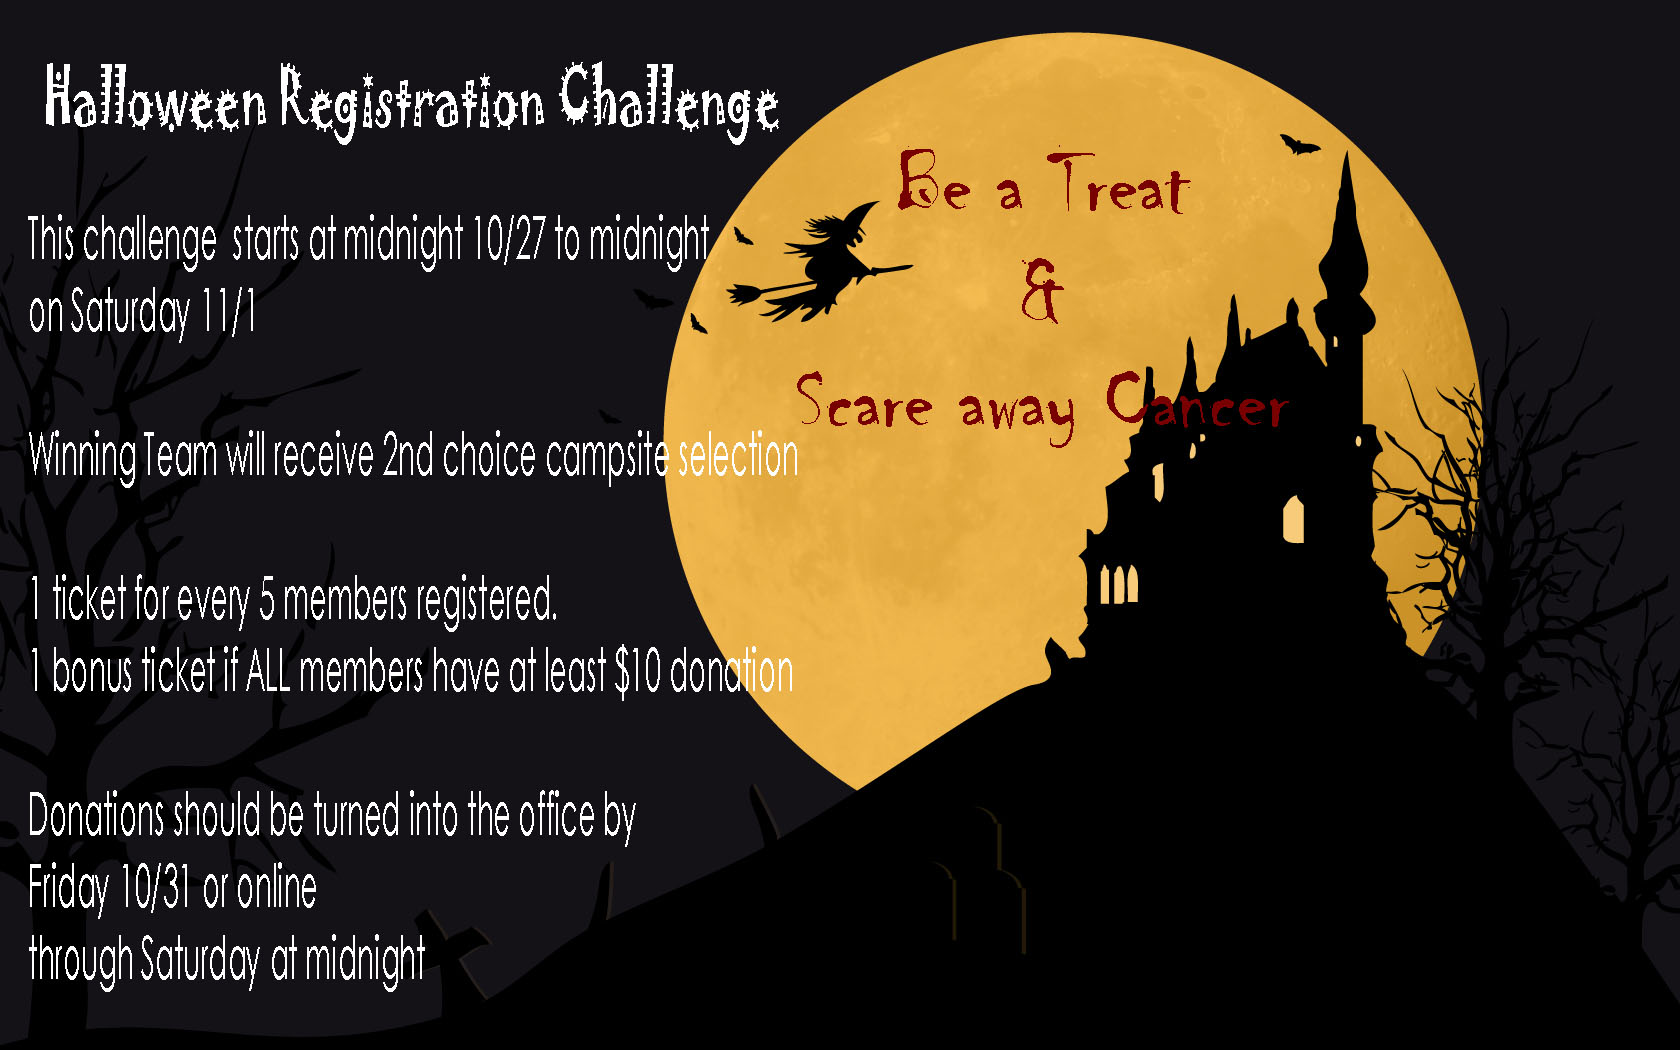 Halloween Registration Challenge